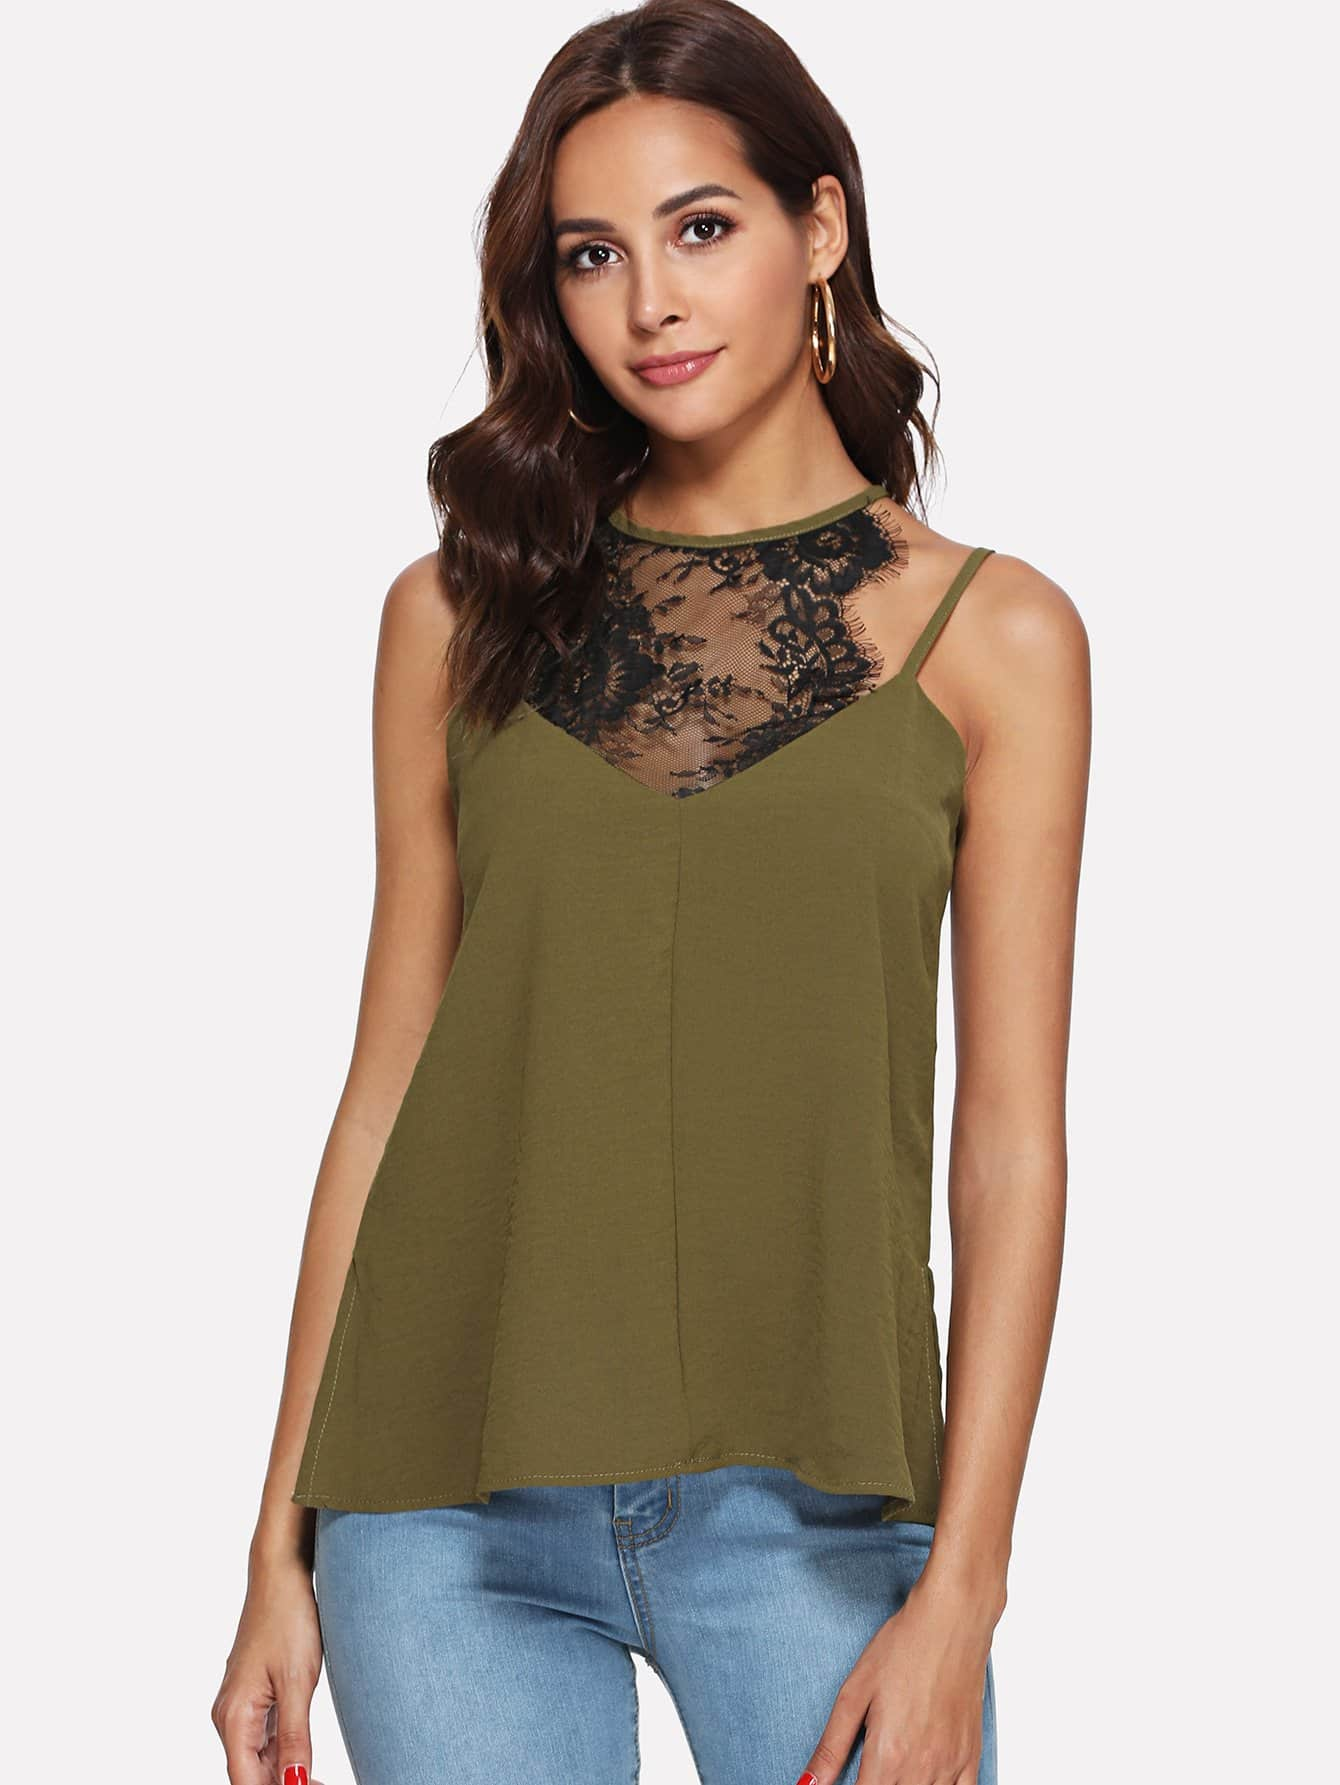 Lace Insert Cami Top lace insert solid top